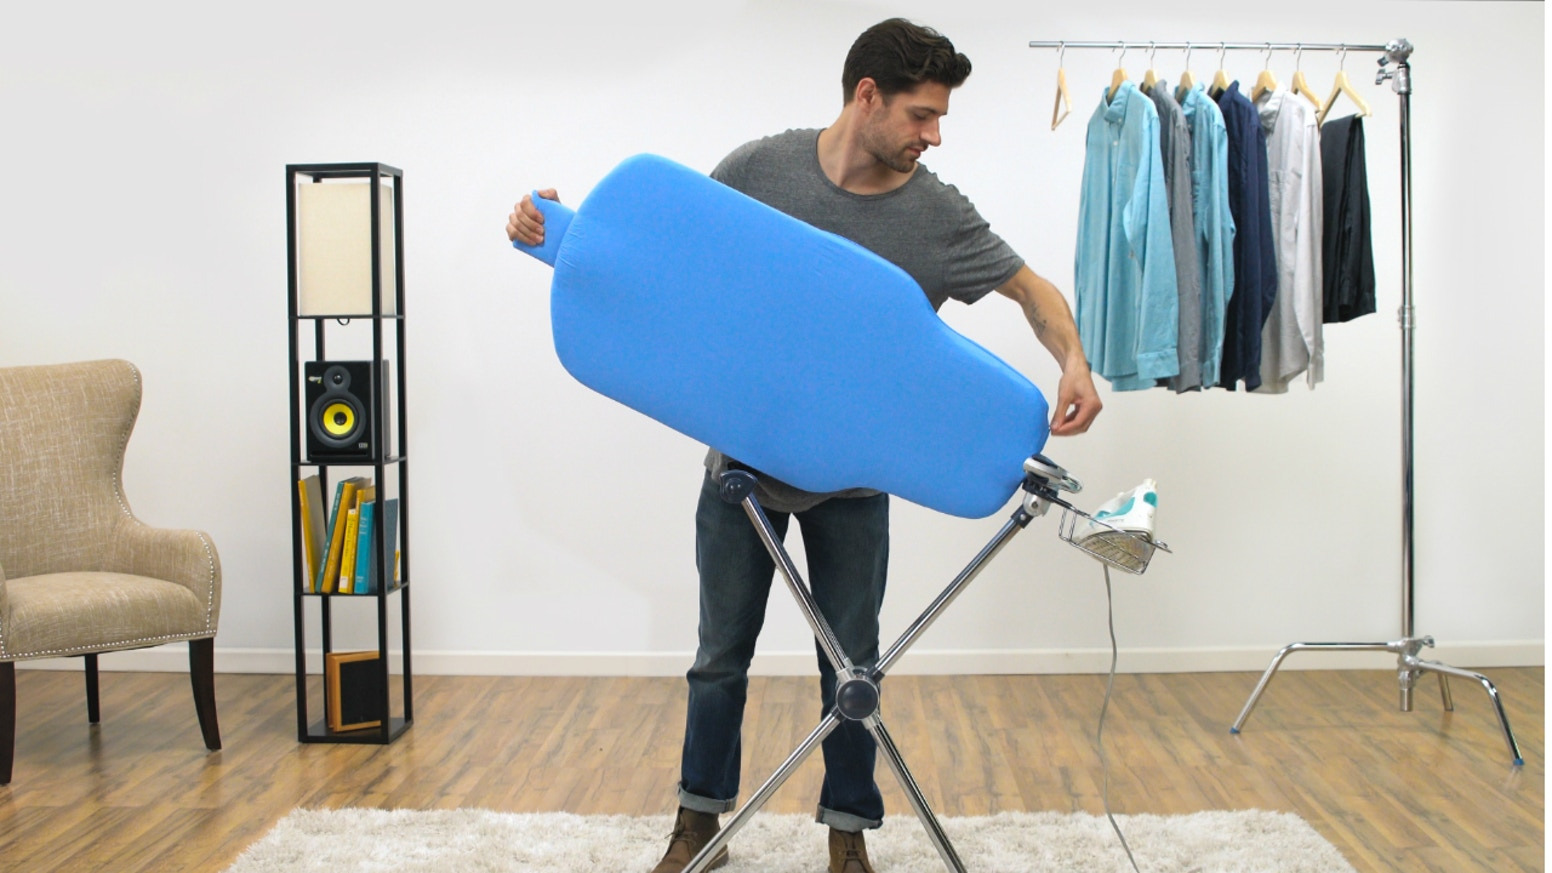 The first redesign of the ironing board since 1892. We have a way to shorten your ironing times by up to 80%.